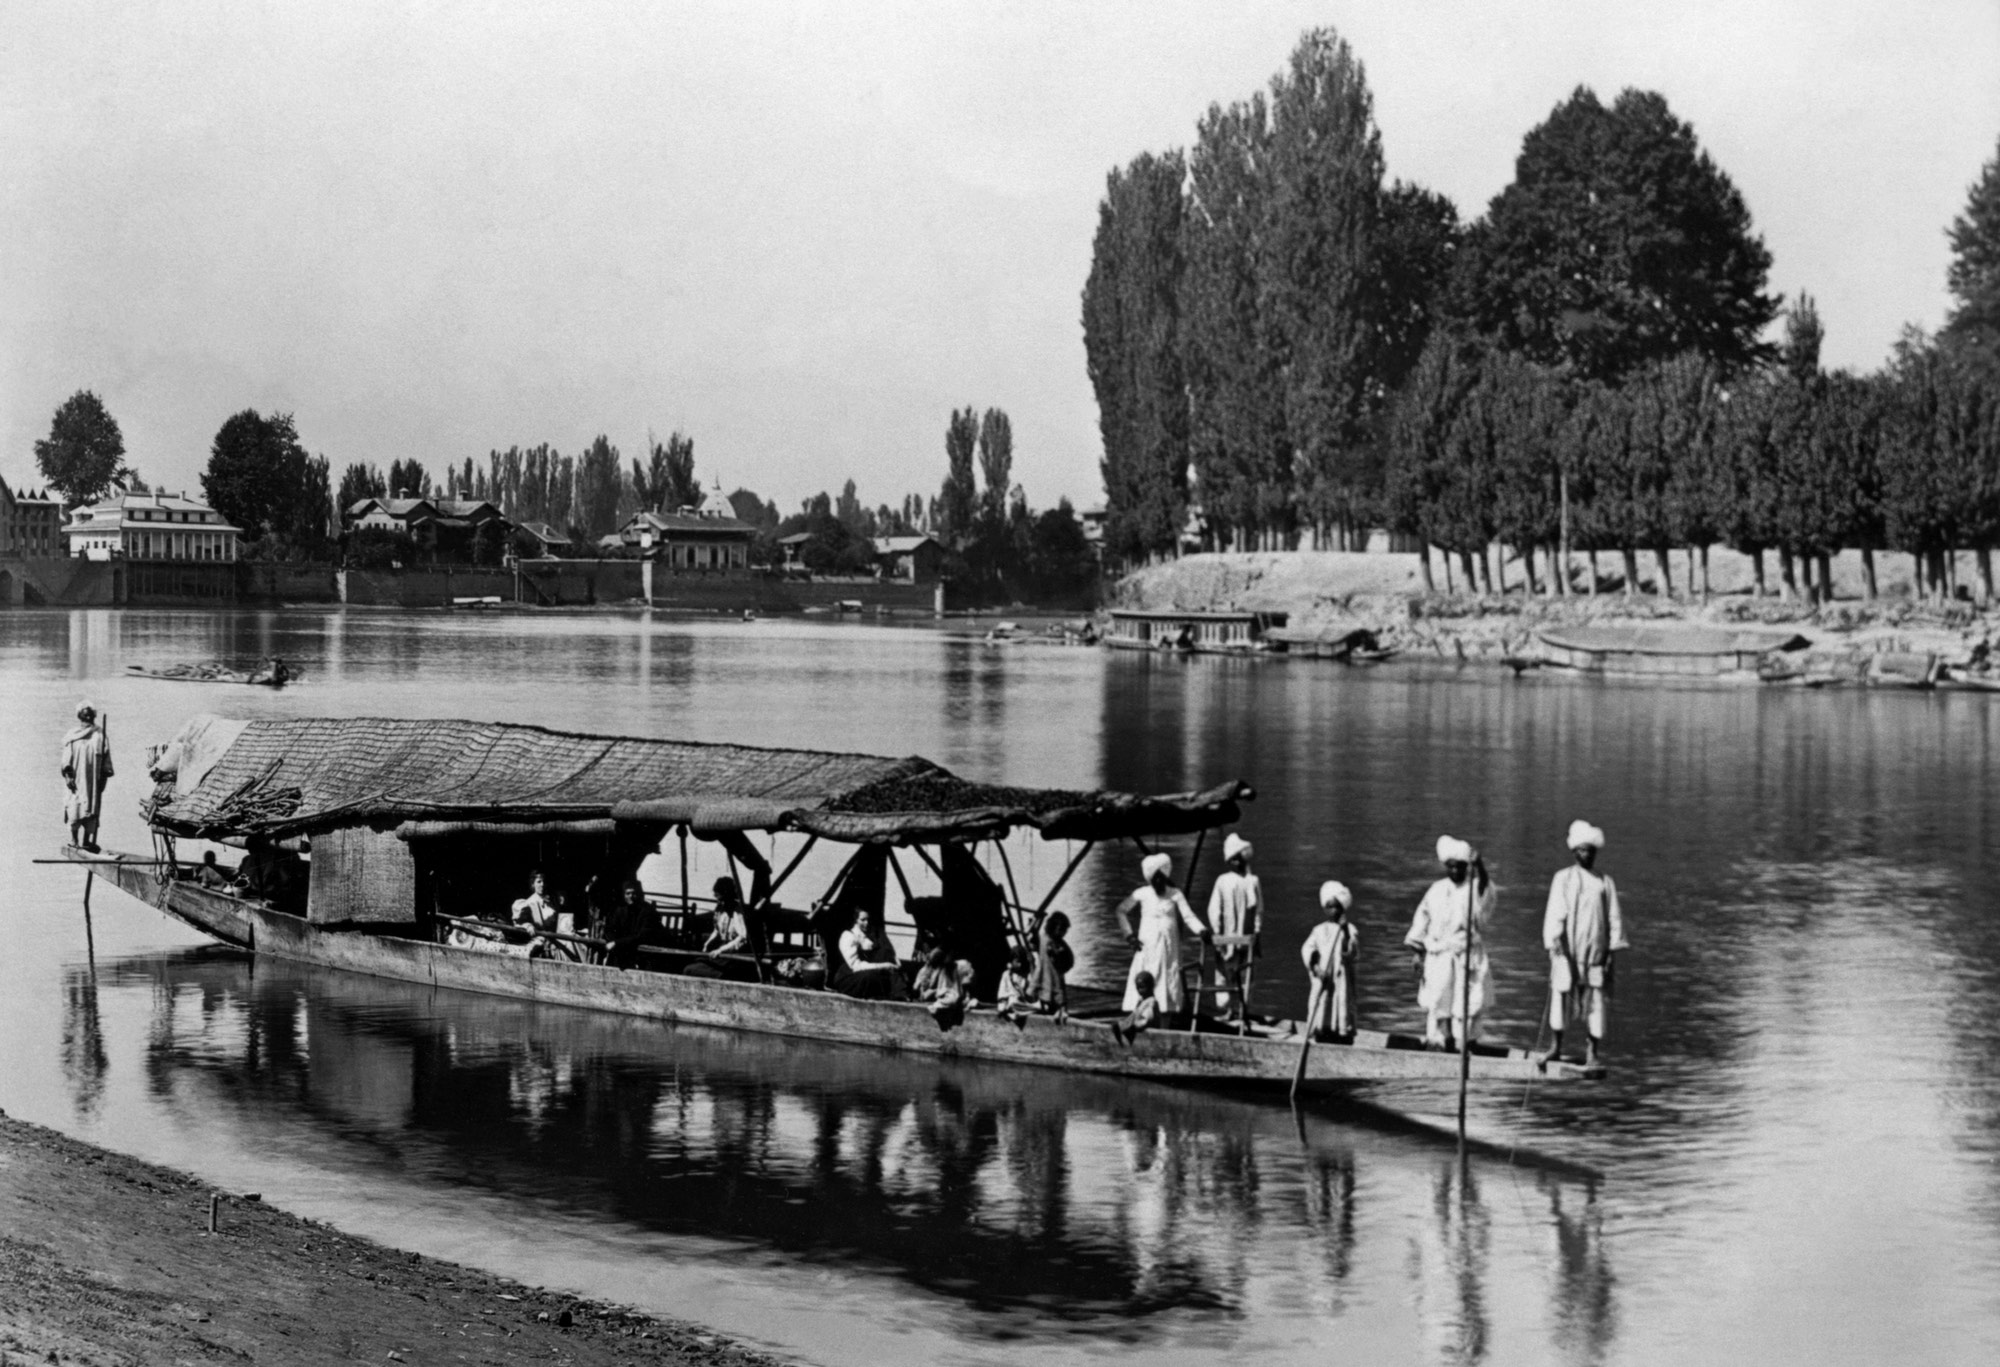 (#67) Kashmir, 1898. Barely visible in the houseboat ( from  L): Josephine MacLeod, Swamiji, Mrs. Ole Bull, Sister Nivedita.